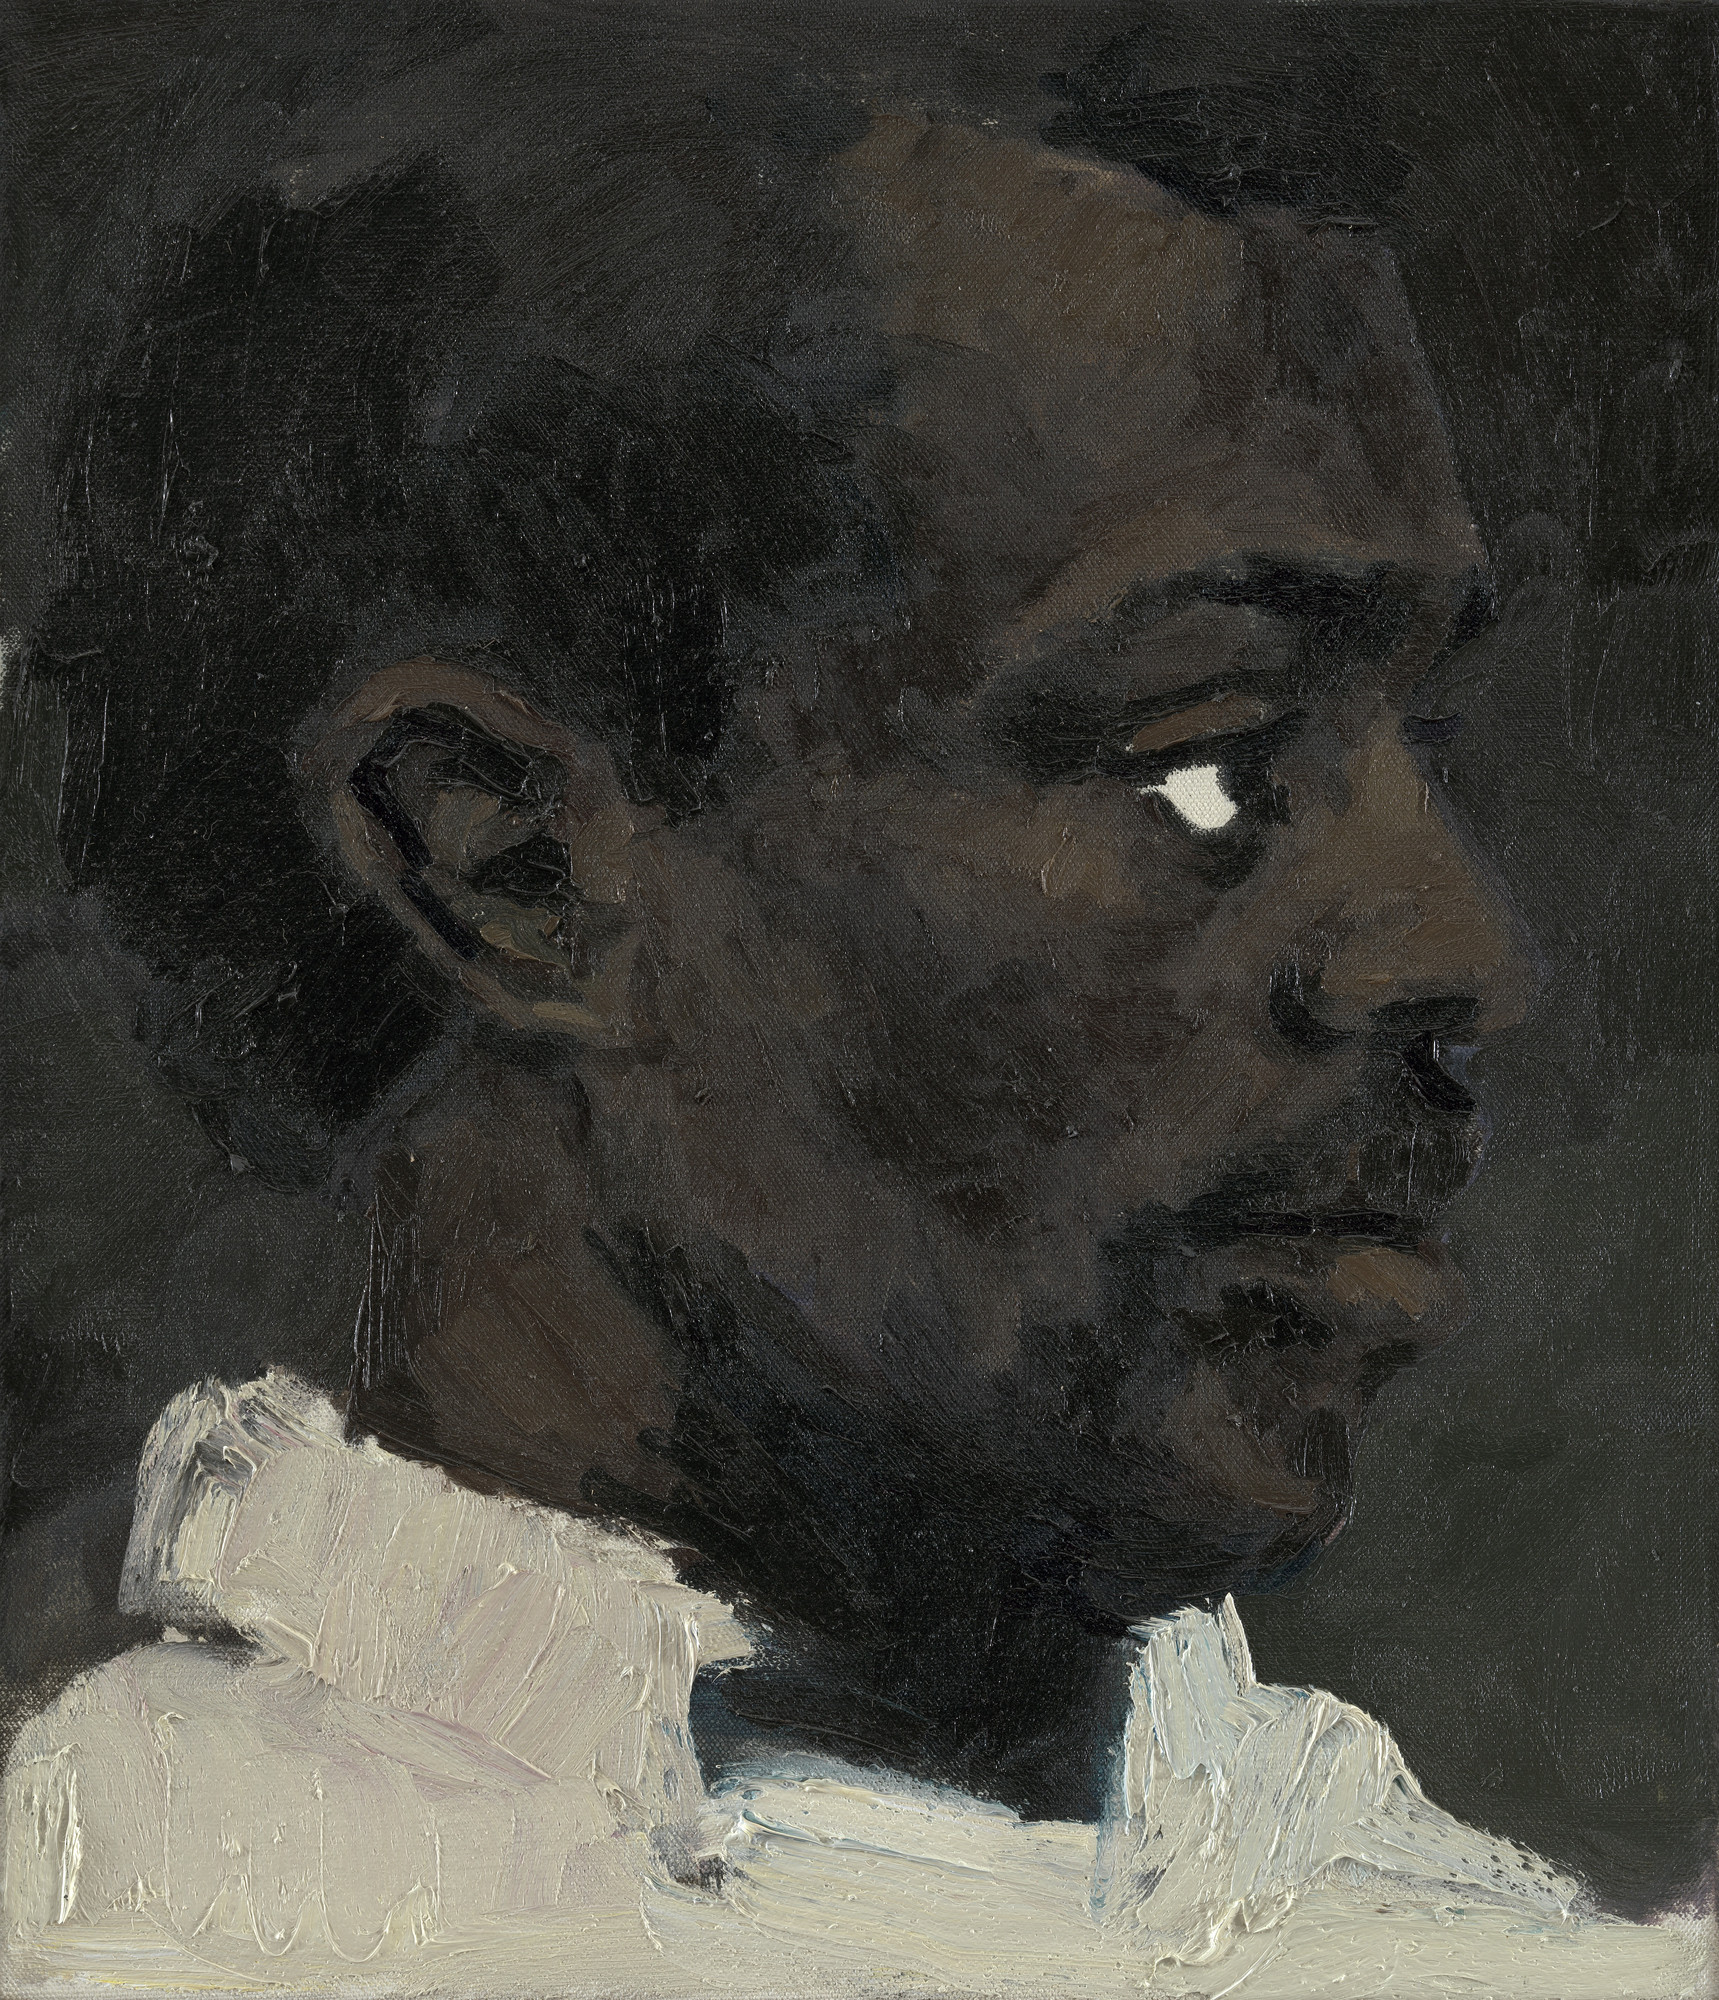 Lynette Yiadom-Boakye. Where It Had Been. 2013